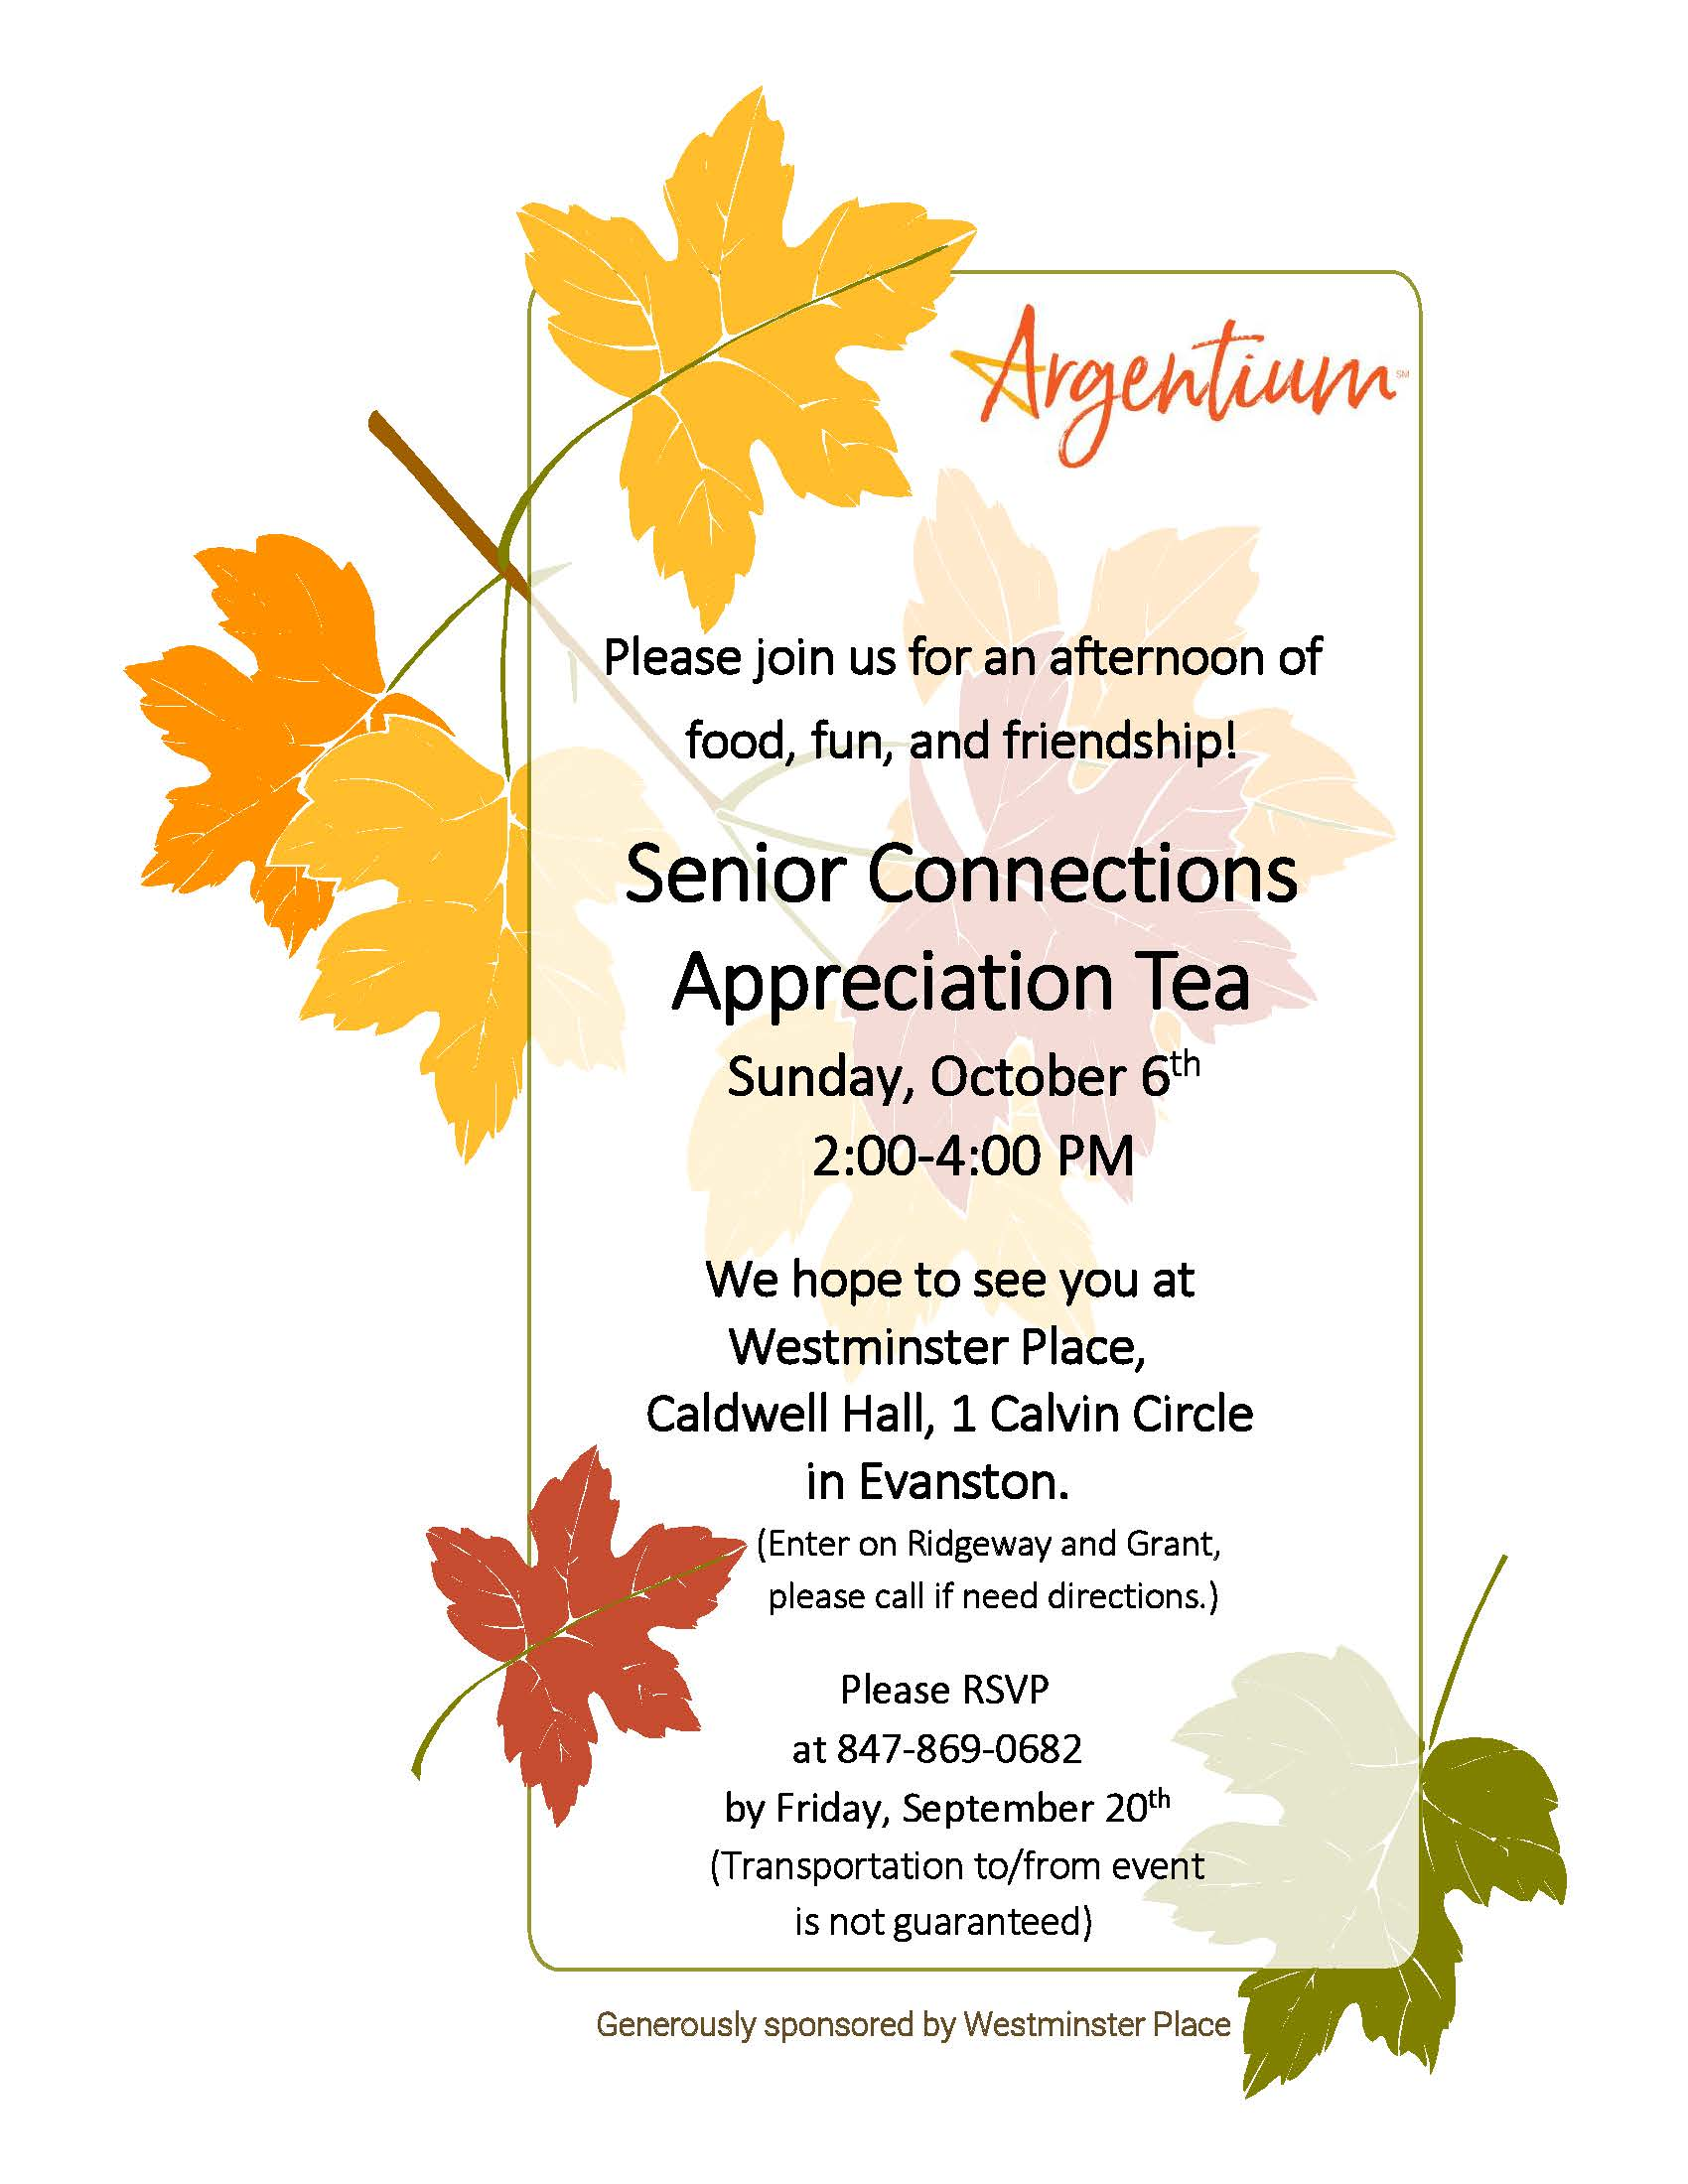 Senior Connections Appreciation Tea